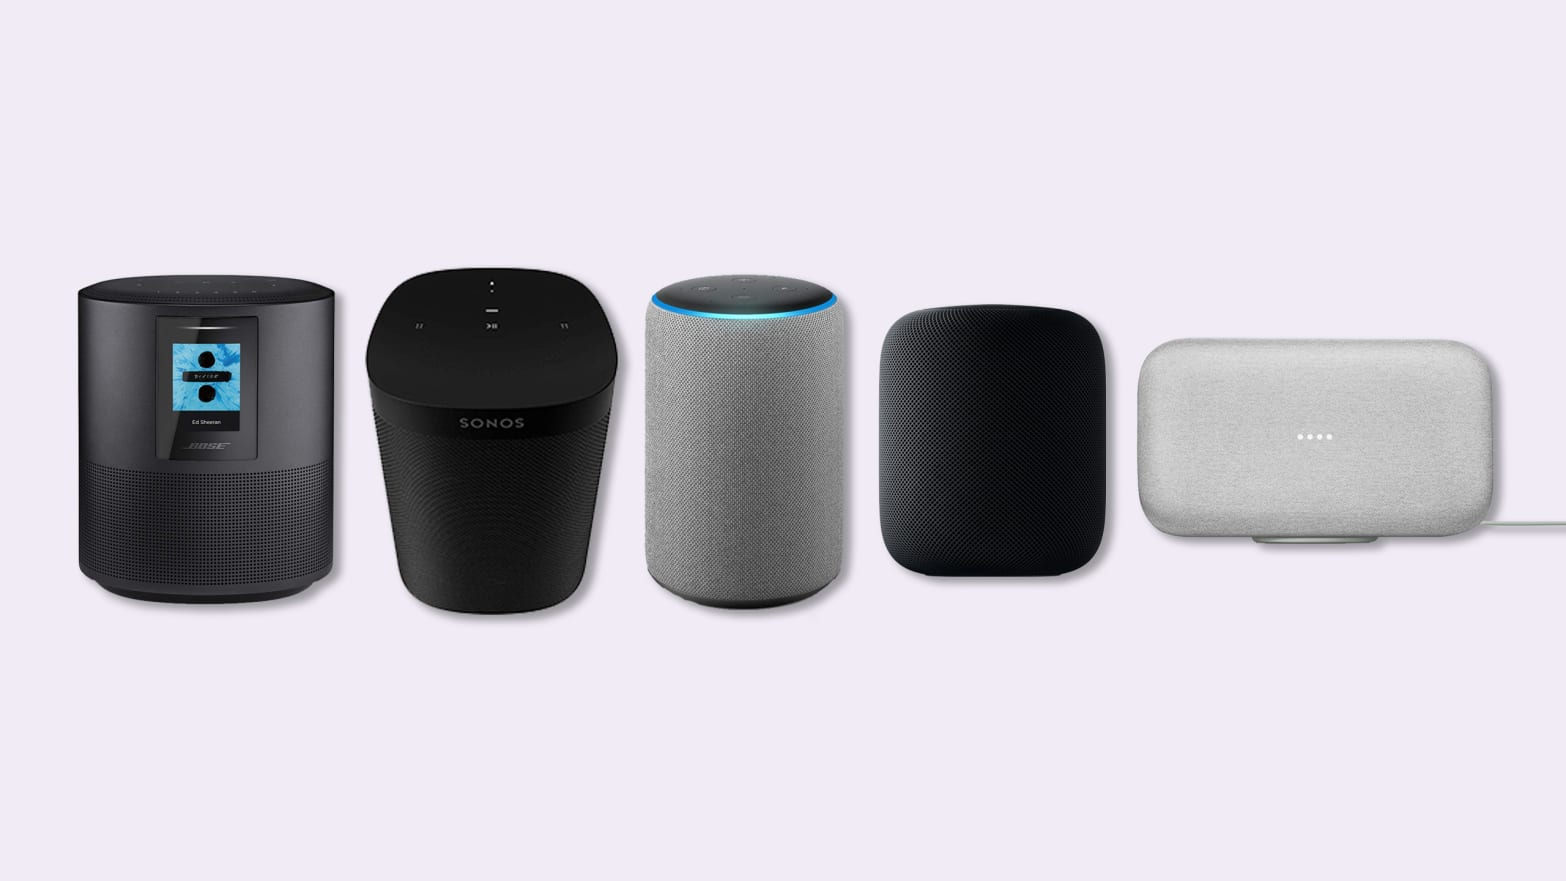 The Best Smart Speakers For Your Home